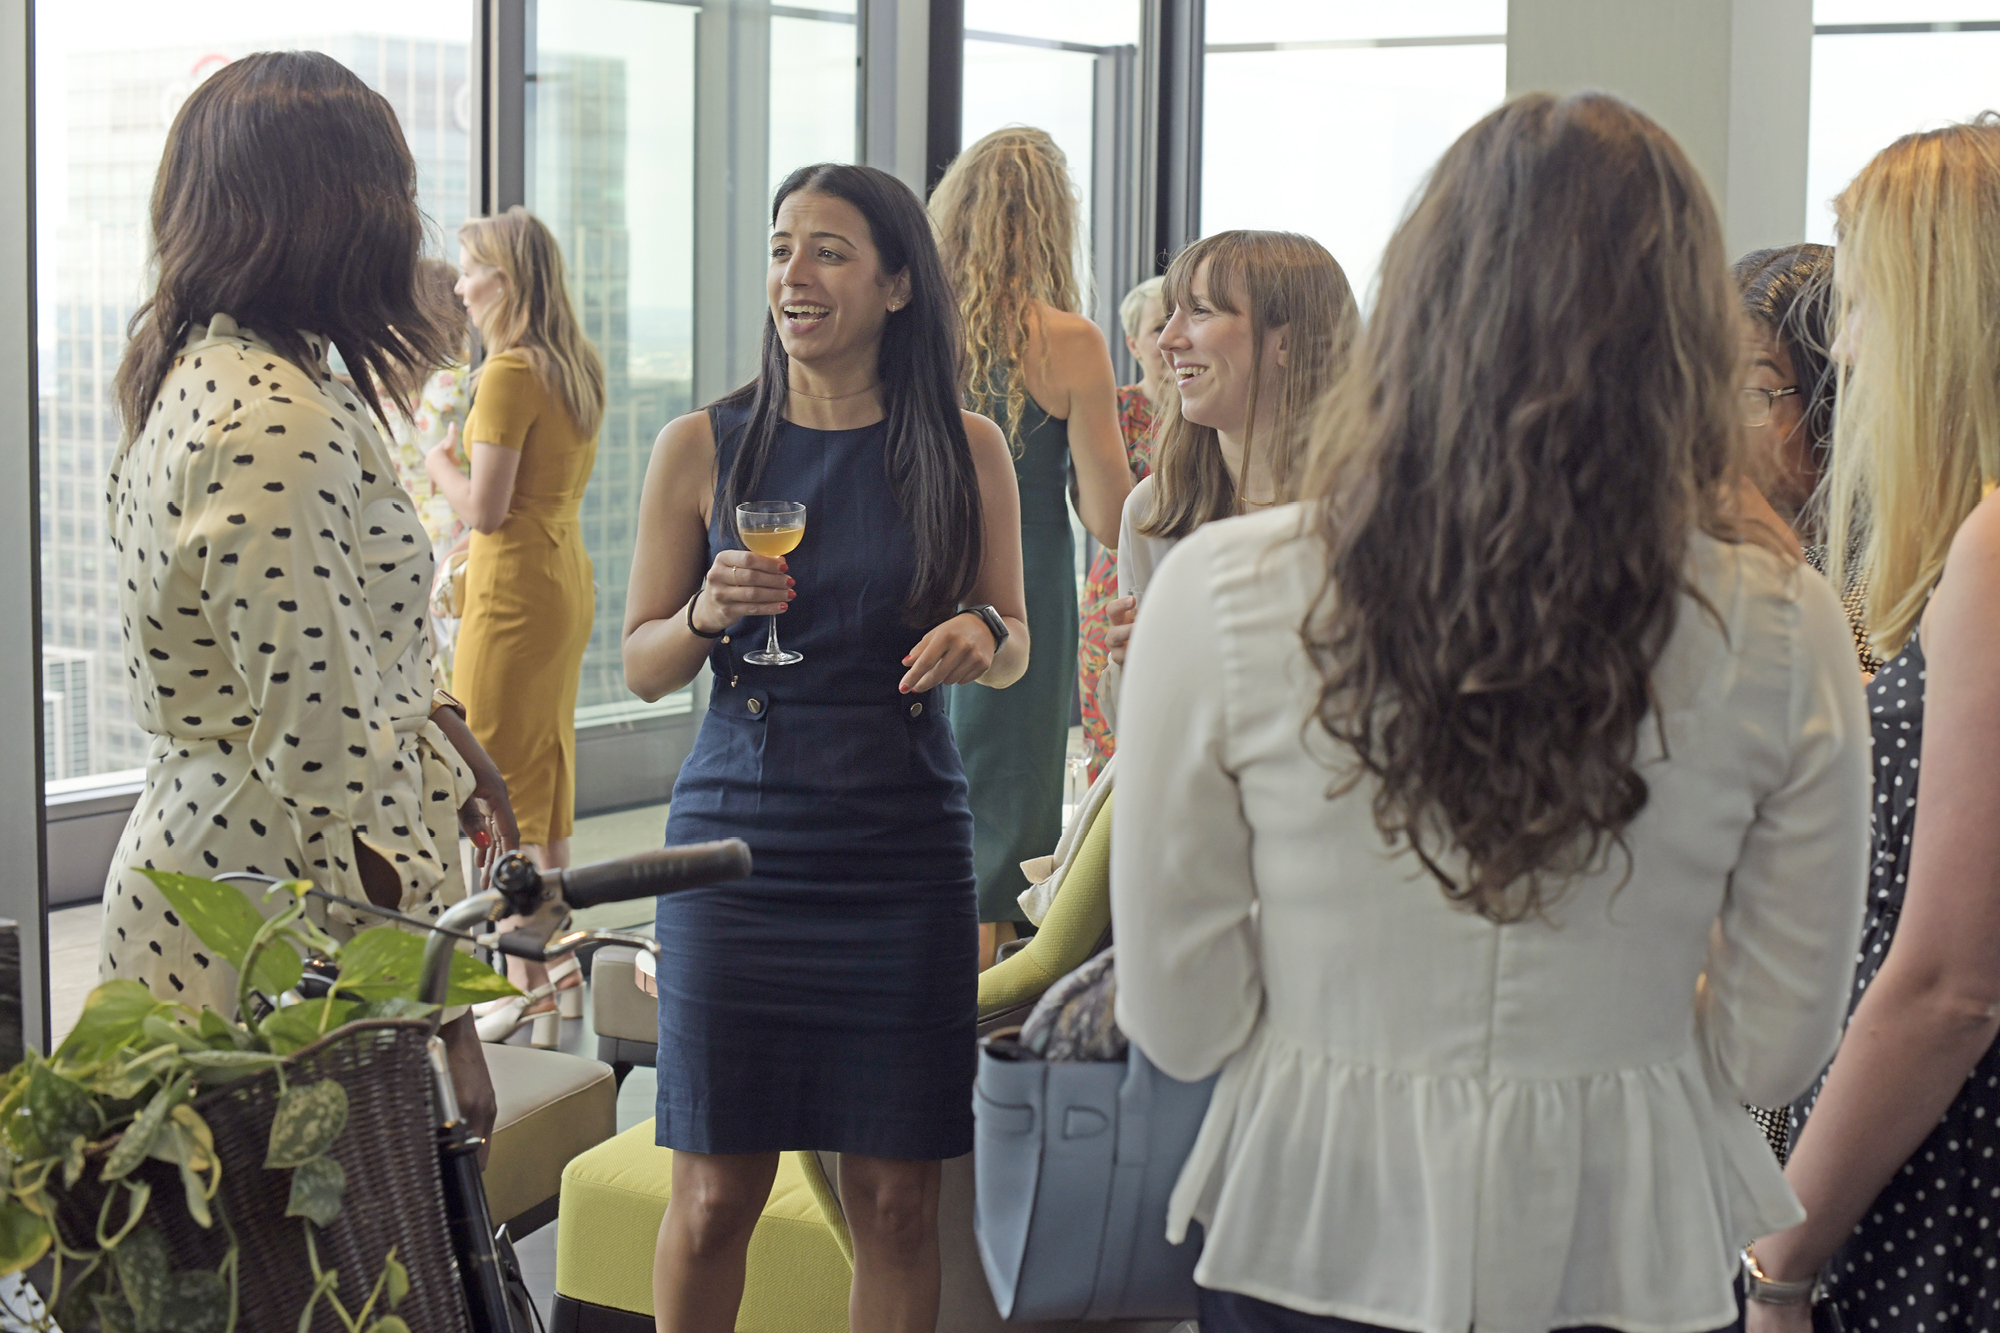 Women of Brummell attended the event at Wardian London